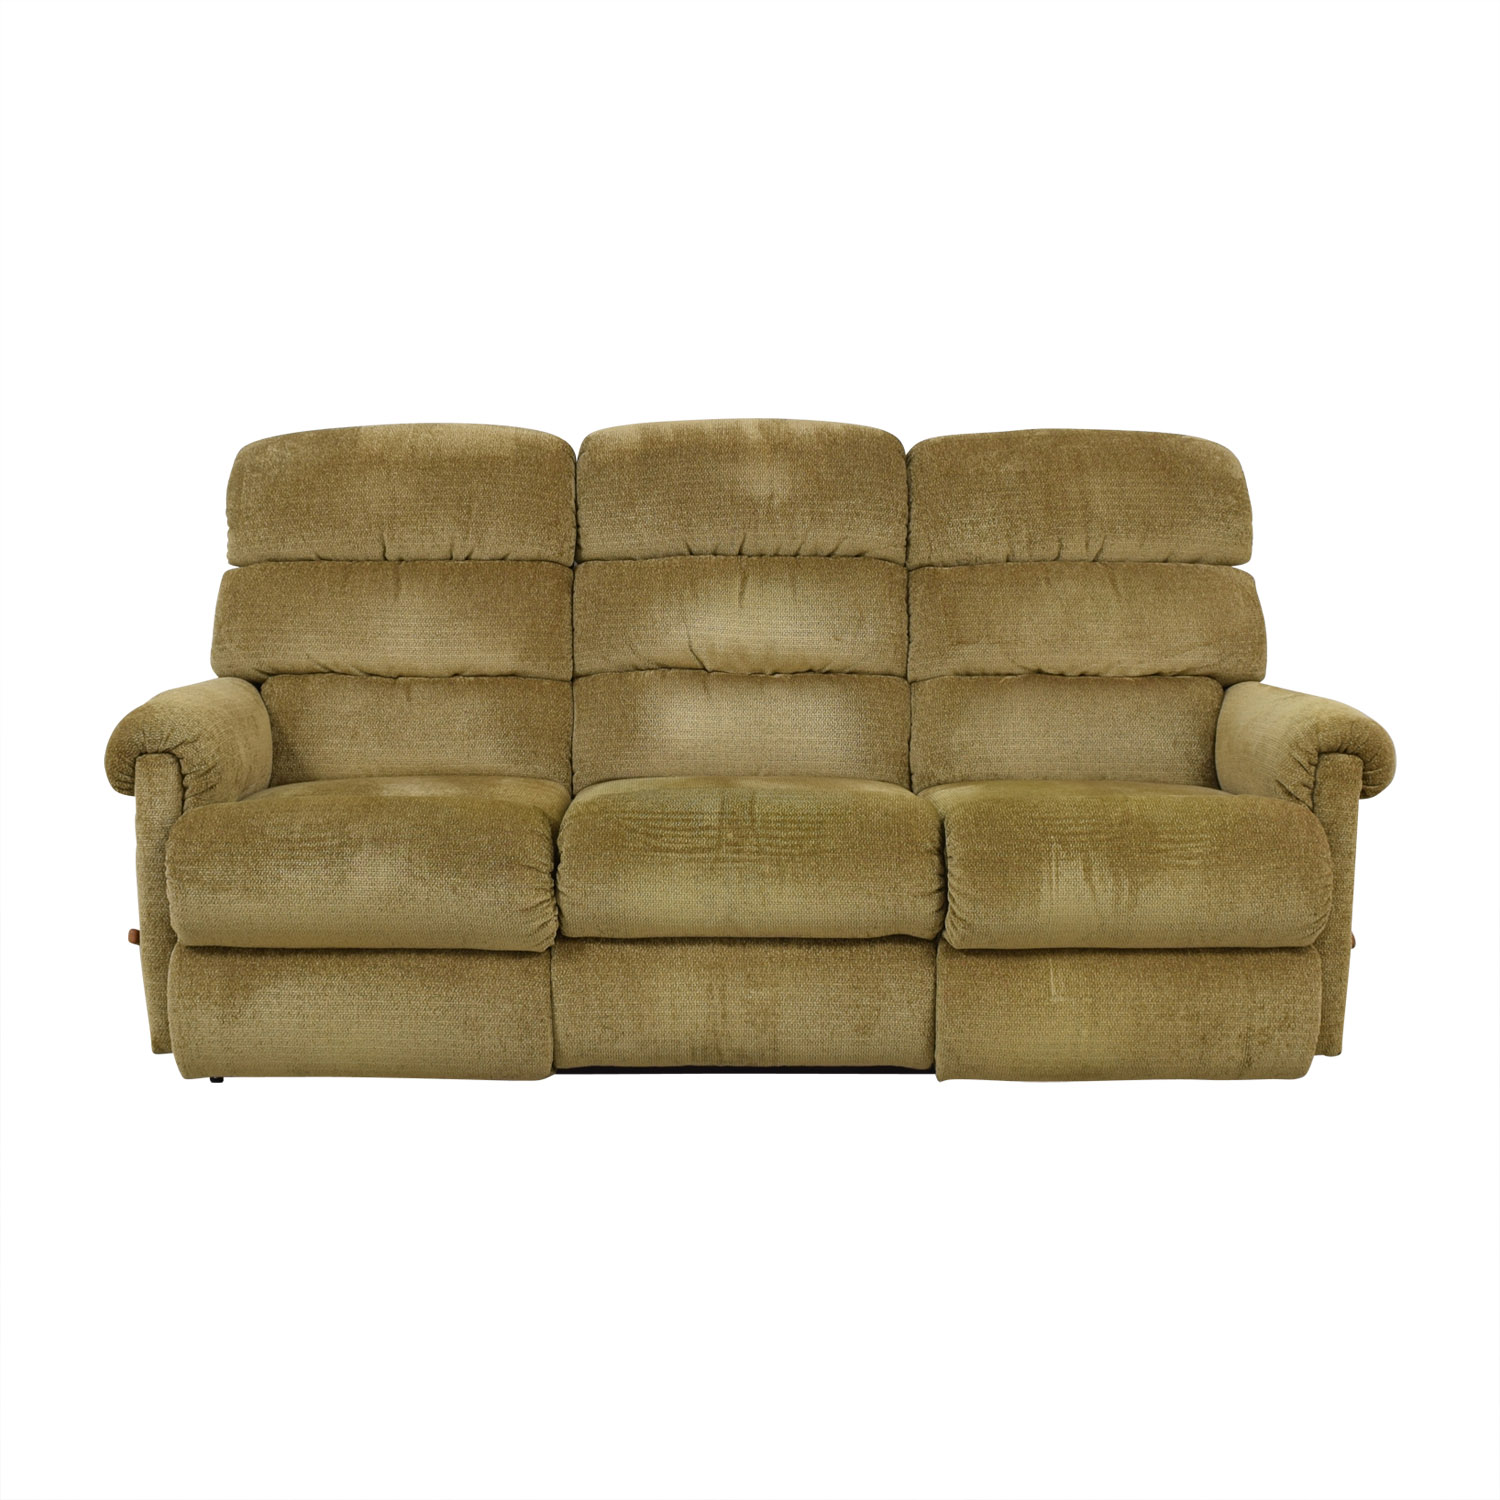 La Z Boy Sofa La-Z-Boy La-Z-Boy Tan Reclining Three-Cushion Sofa